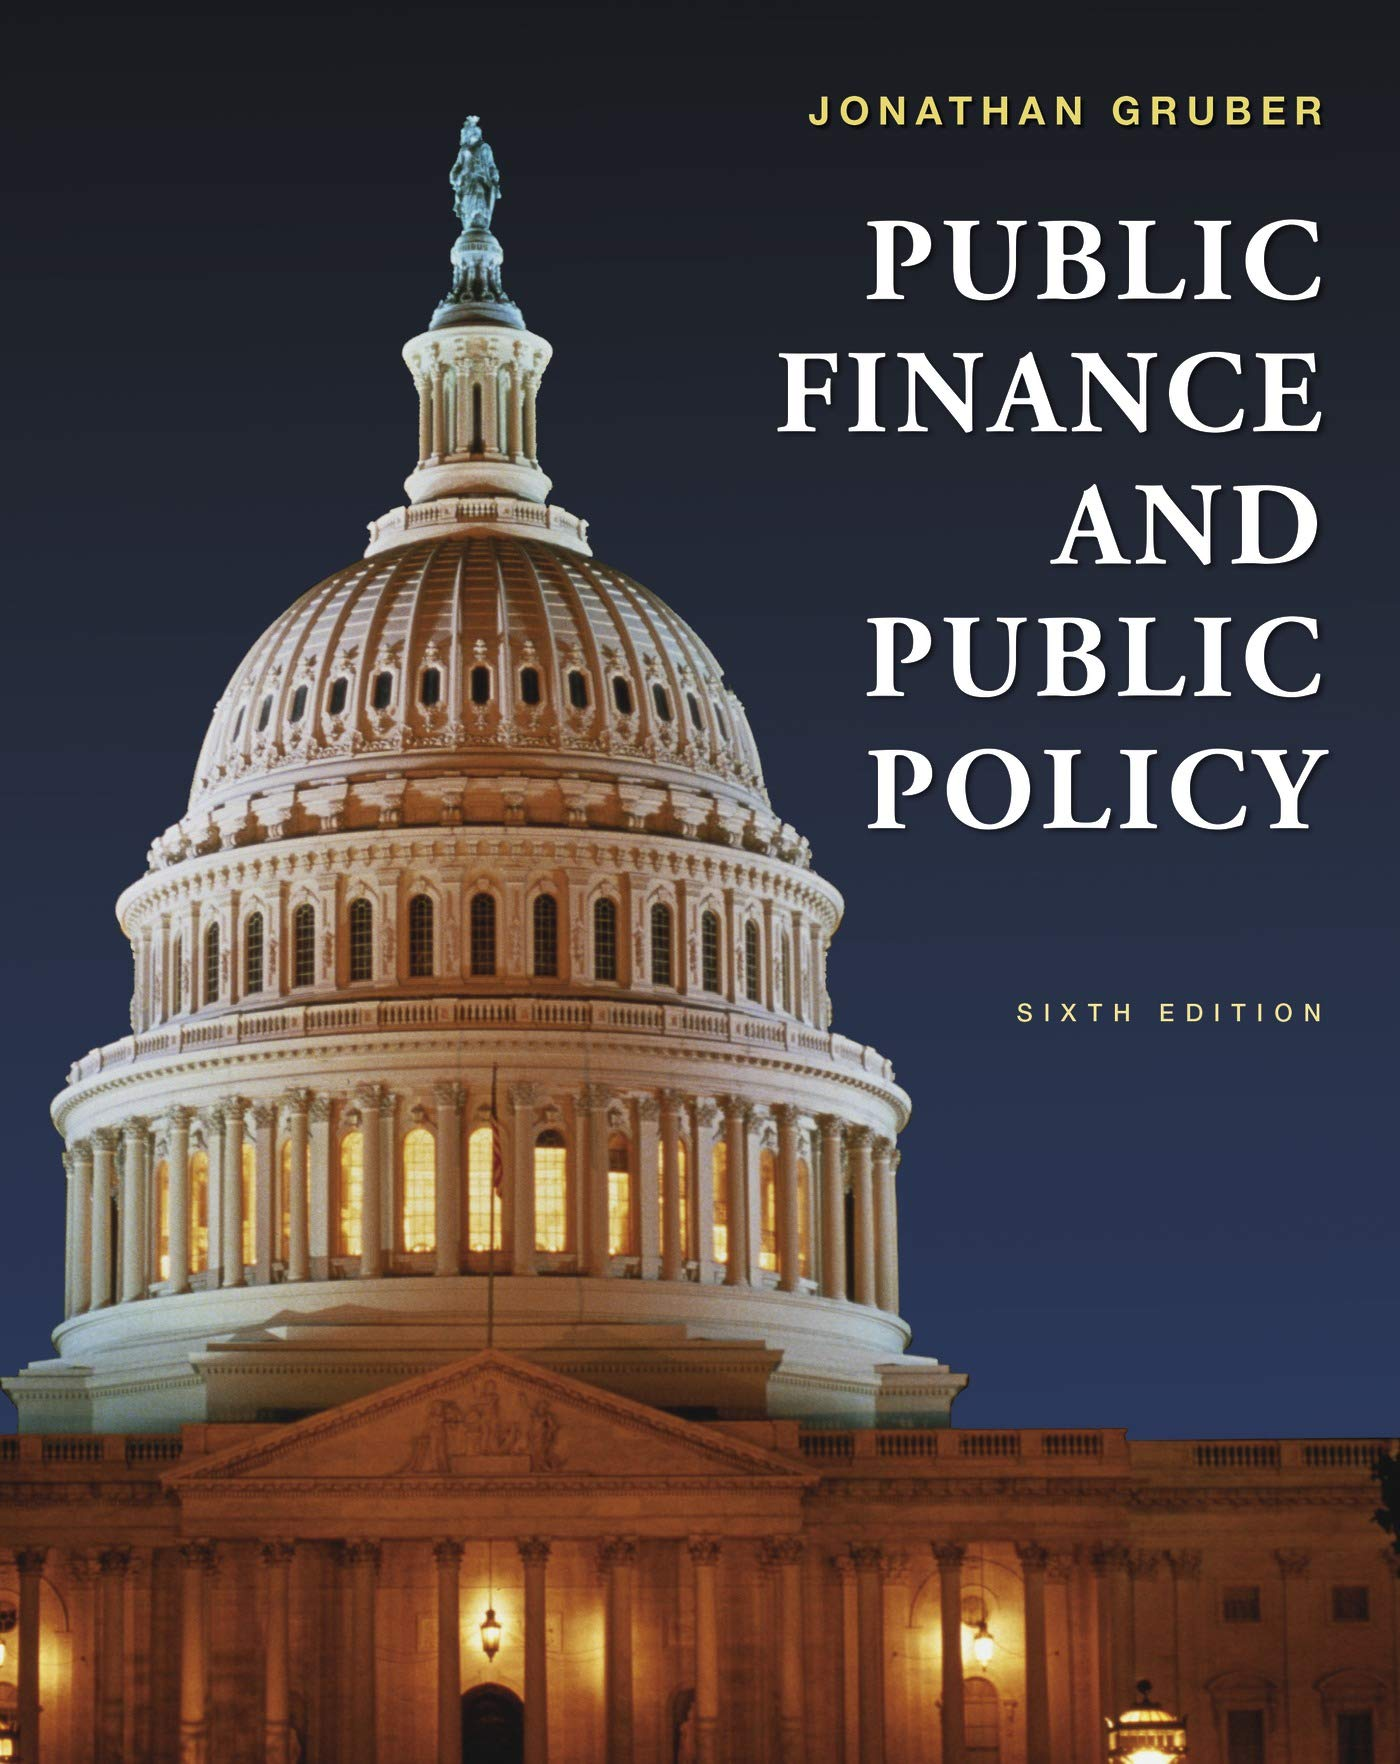 Image OfPublic Finance And Public Policy